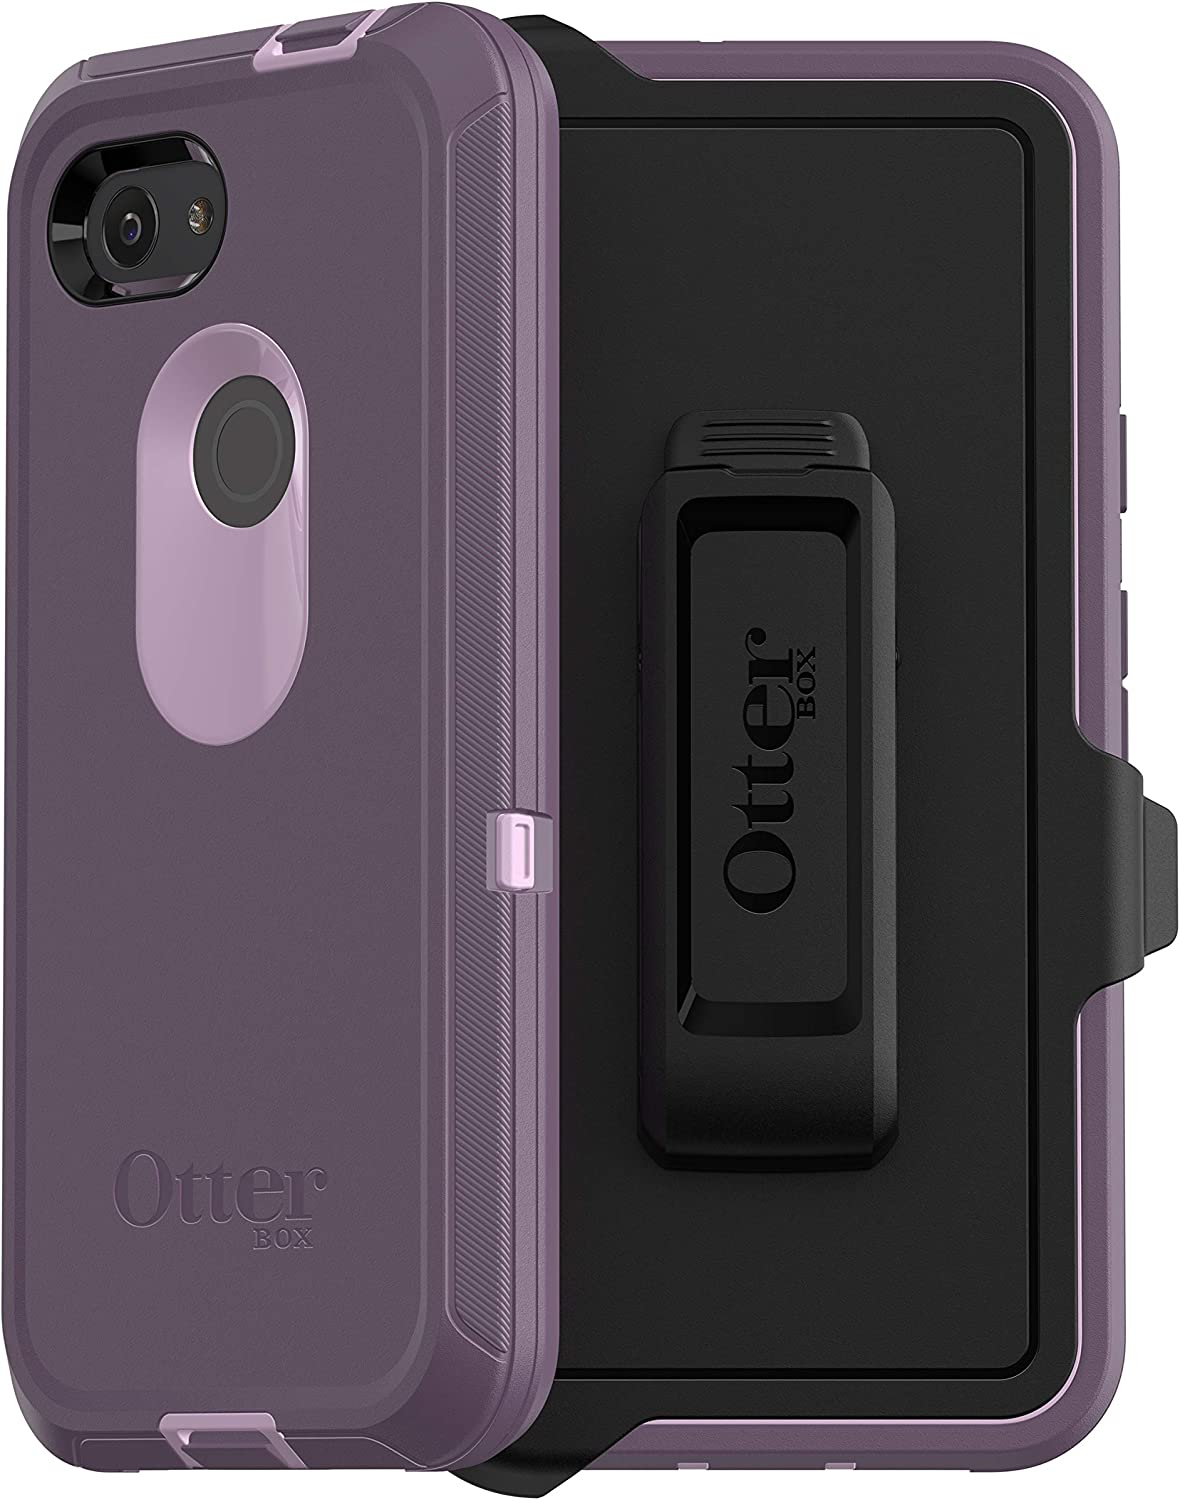 OtterBox Defender Series Case forGoogle Pixel 3a - Retail Packaging - Purple Nebula (Winsome Orchid/Night Purple)